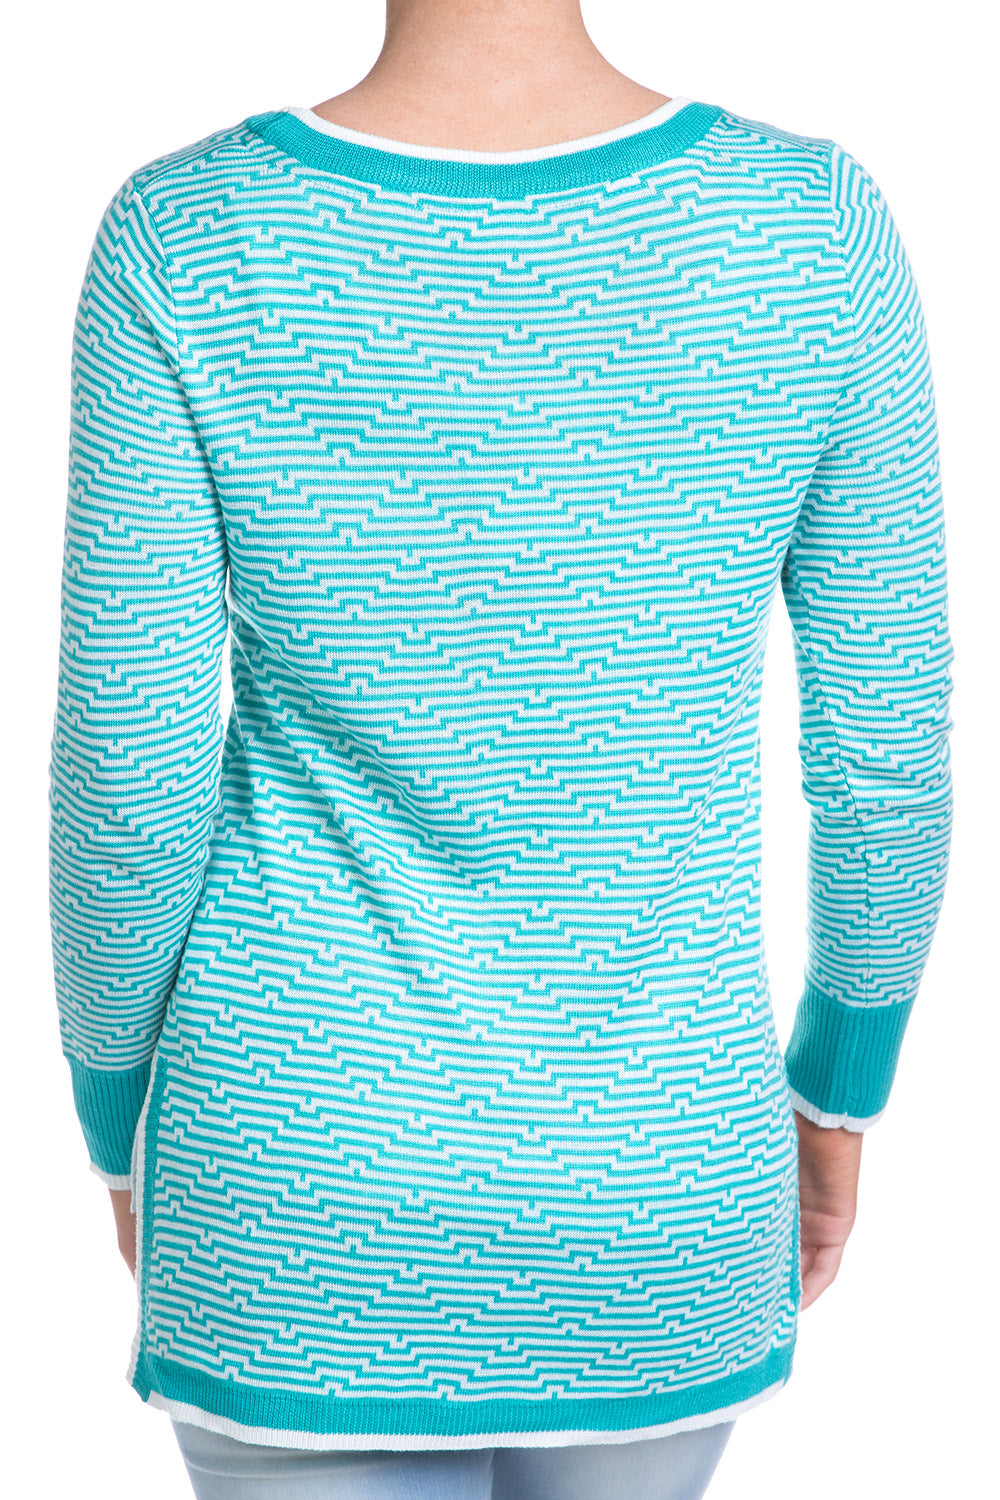 Type 1 Chevron Teal Top